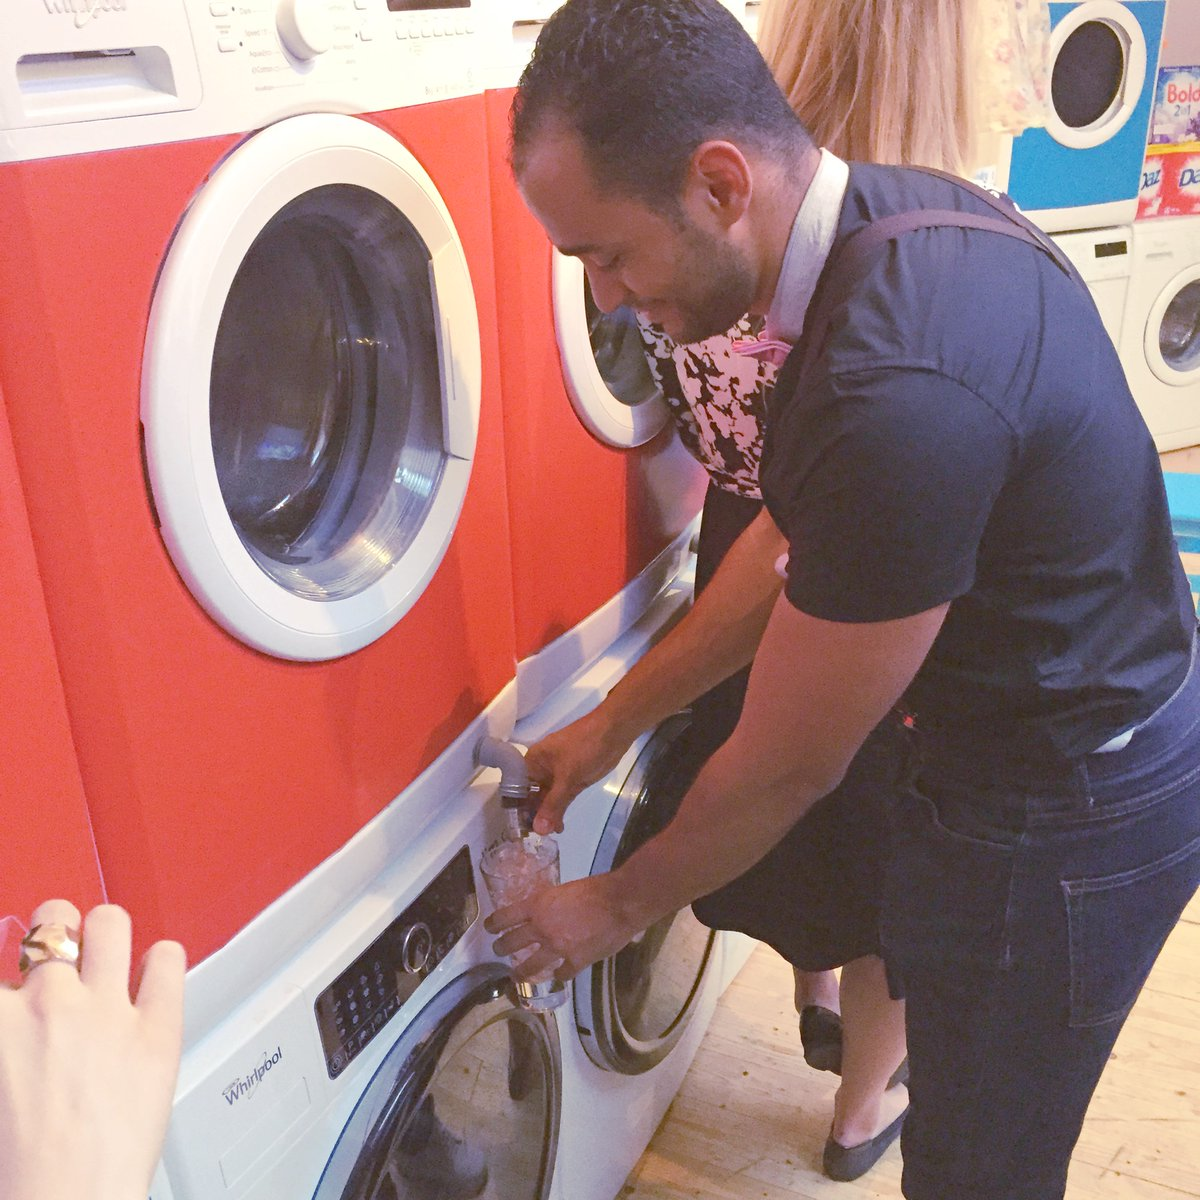 test Twitter Media - This week's #ThrowbackThursday is from the Whirlpool Dirty Laundry event back in 2015, where the brand launched its premium Supreme Care washing machine range at a pop up laundrette in London! #Whirlpool #Laundry https://t.co/WdgU2MlAf4